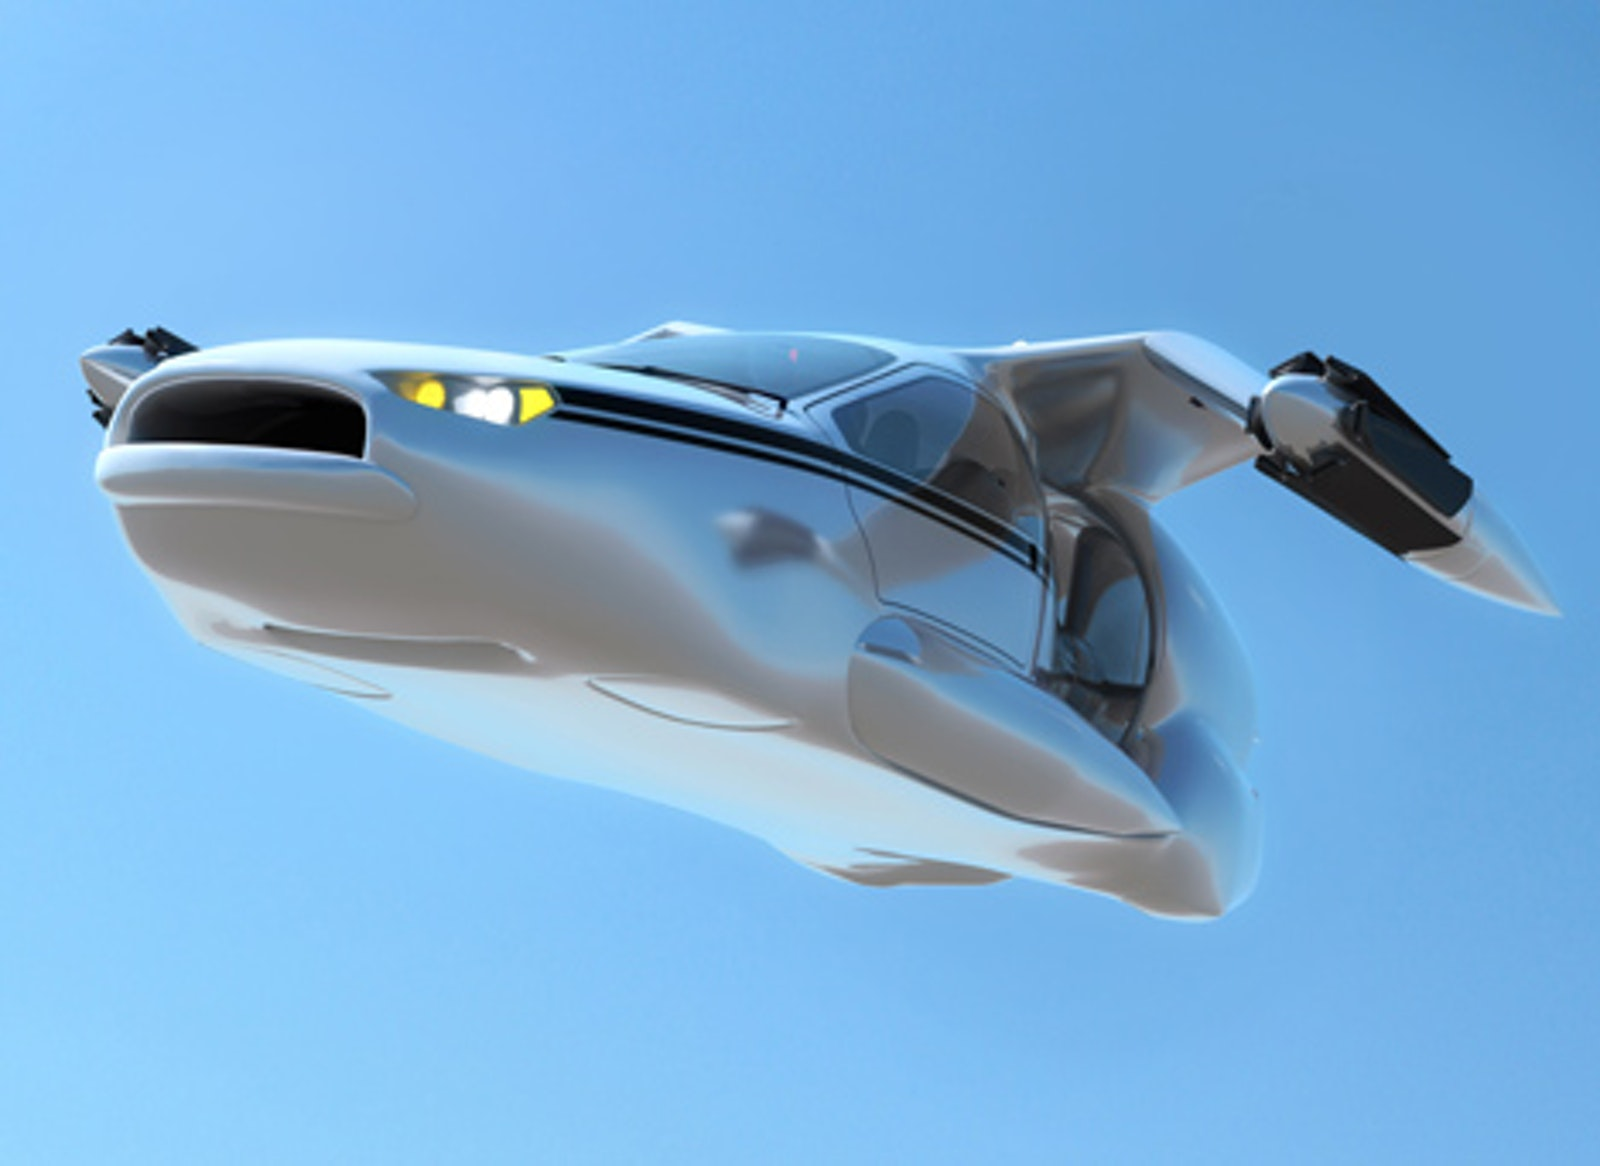 A Flying Car Capable Of Vertical Take Off And Landing Is Being Developed By Machusetts Based Company Terrafugia But Delivery The Vehicle Will